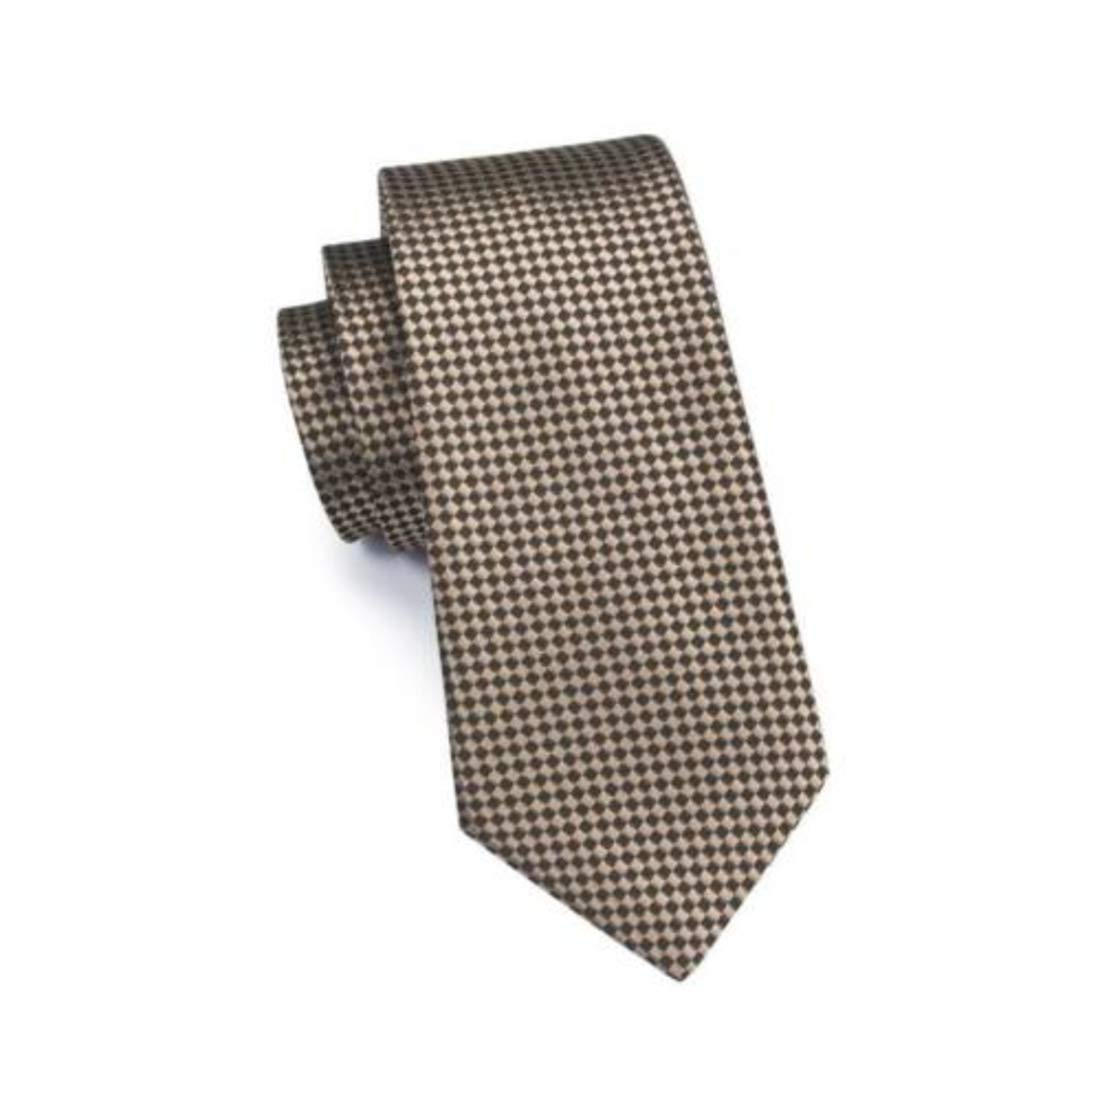 Irvint /& Co Brown Geometric Checks Classic Silk Mens USA Necktie With Pocket Square And Cufflinks Woven Set